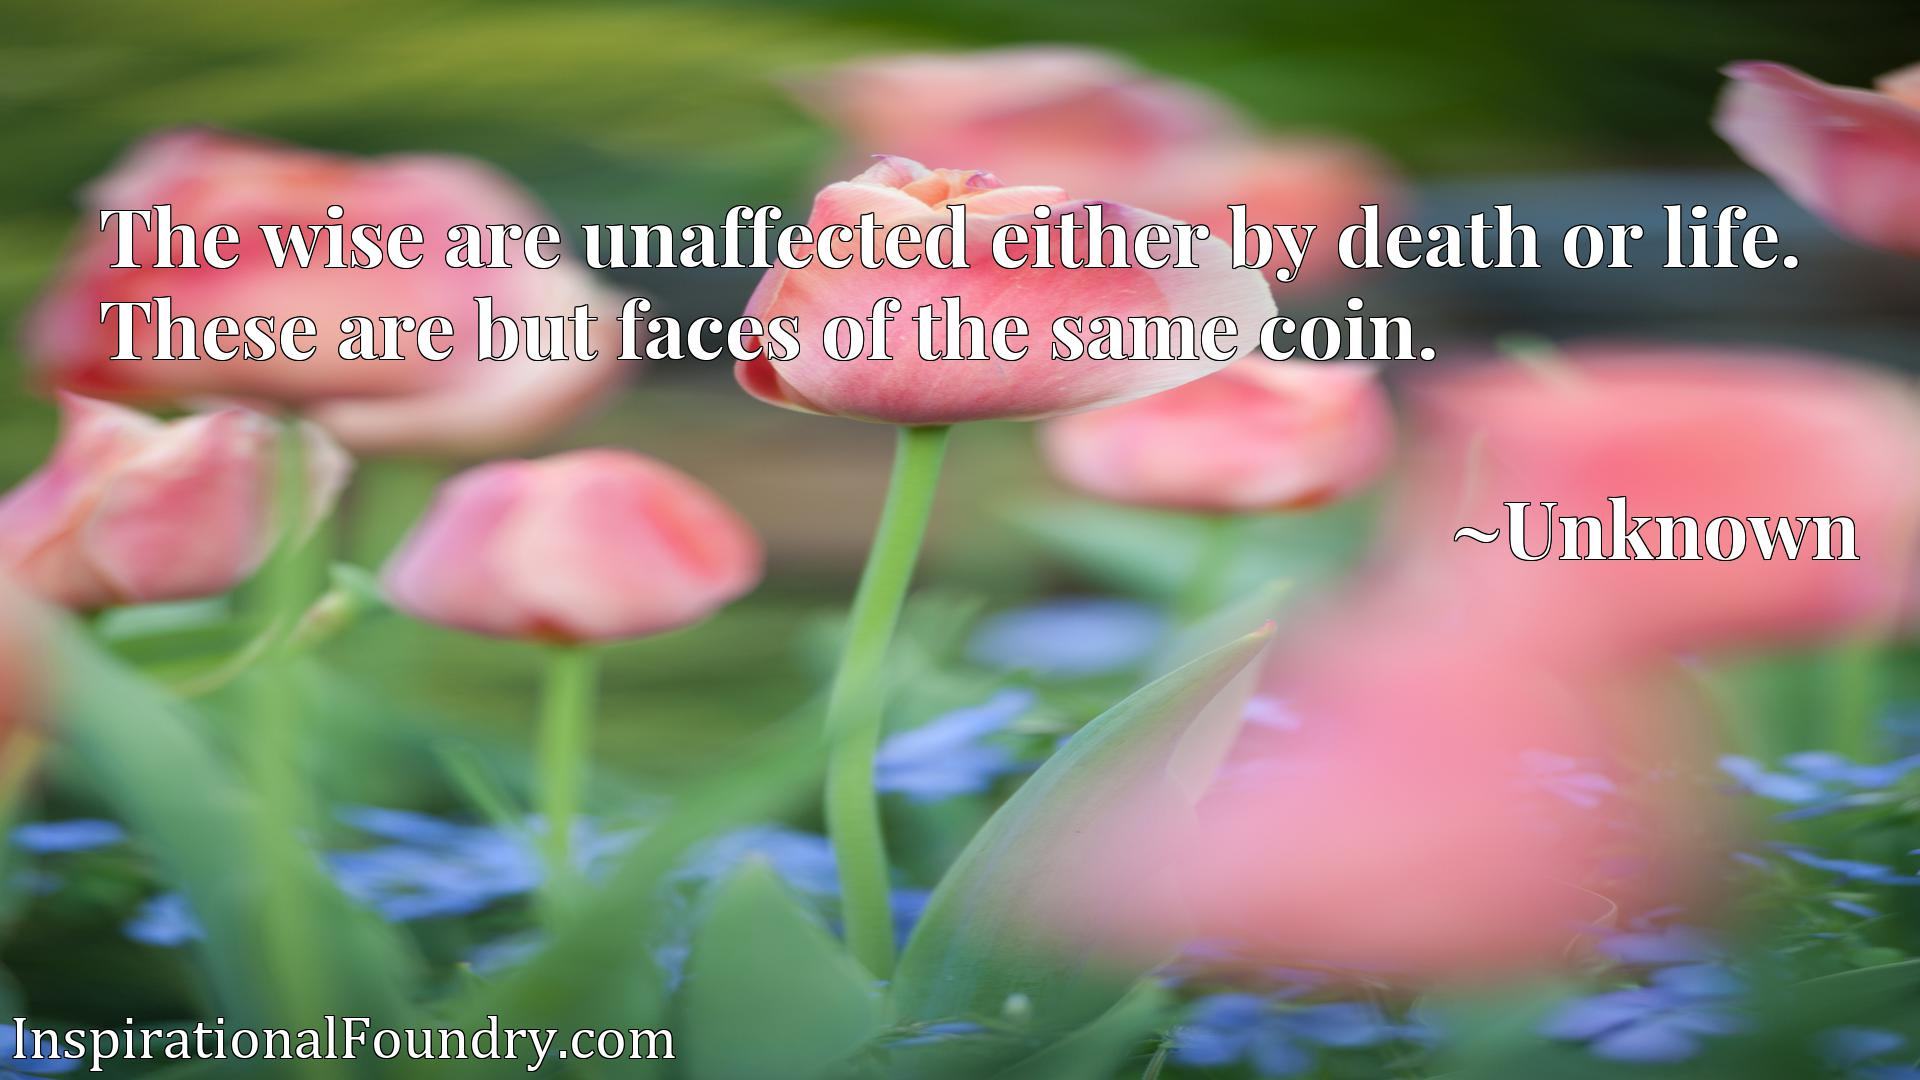 Quote Picture :The wise are unaffected either by death or life. These are but faces of the same coin.